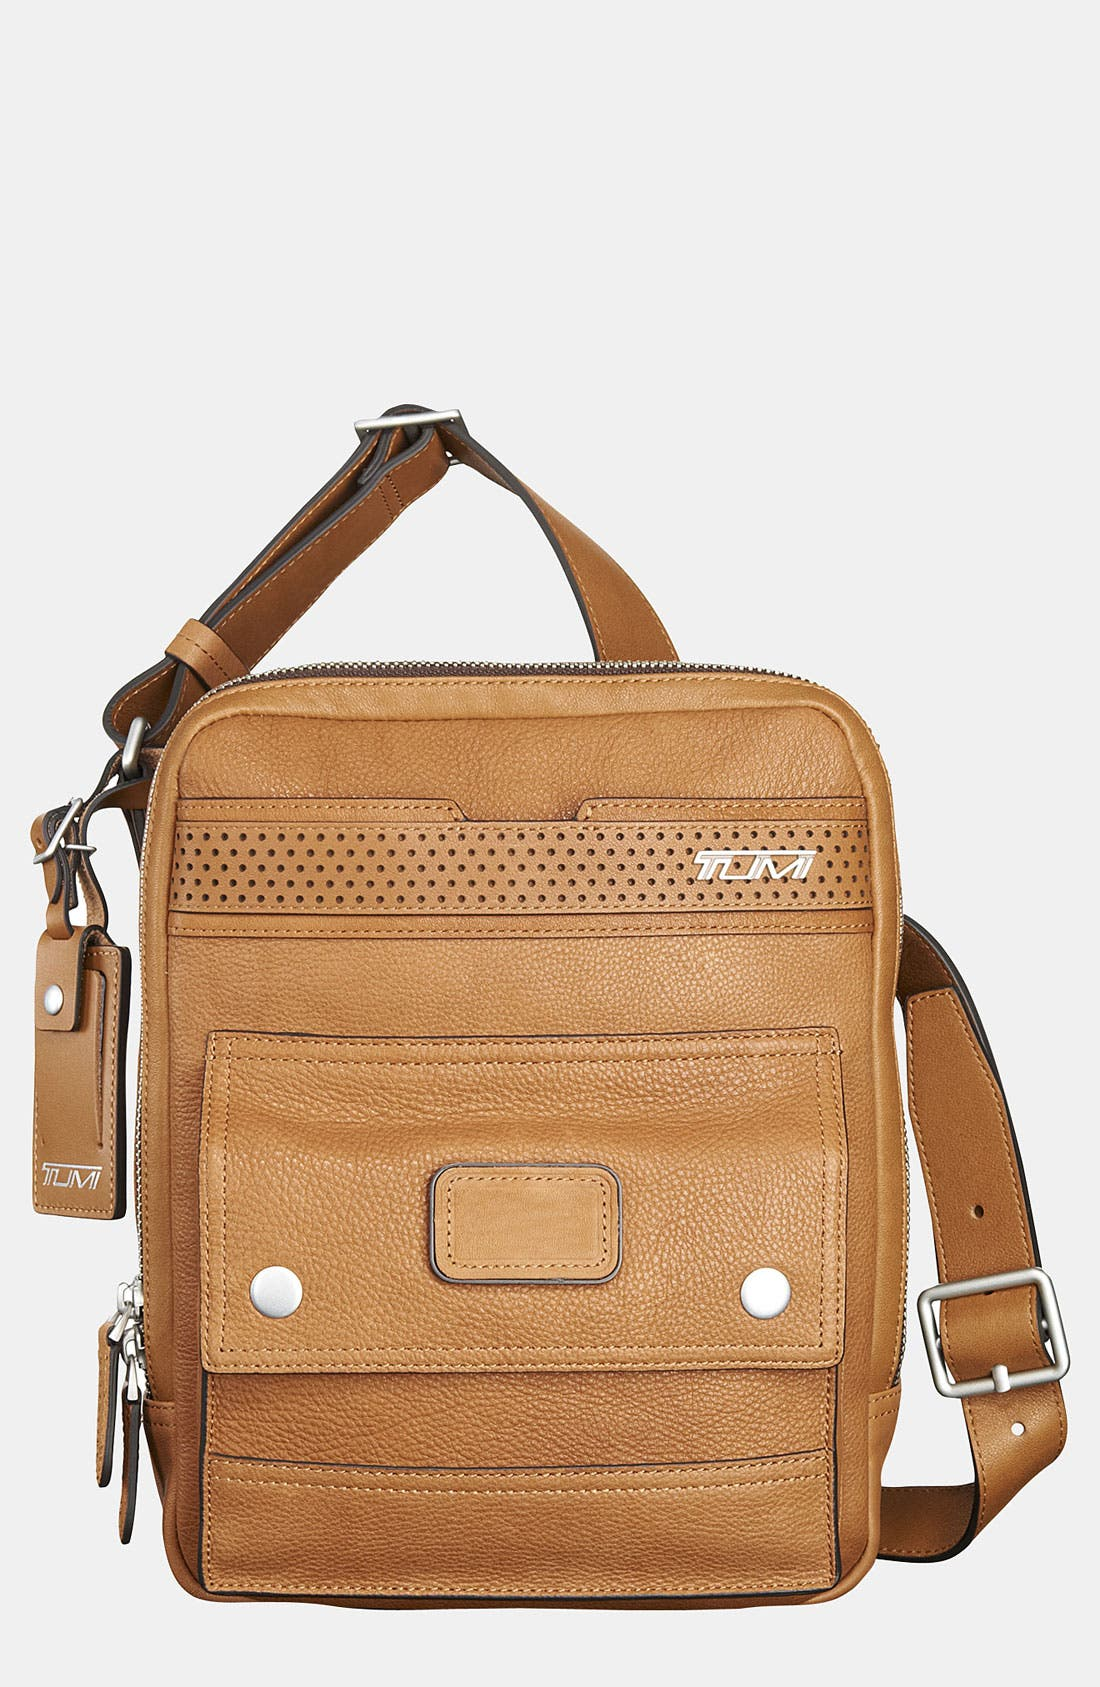 'Ducati Retro - Bronco' Crossbody Bag,                             Main thumbnail 1, color,                             219